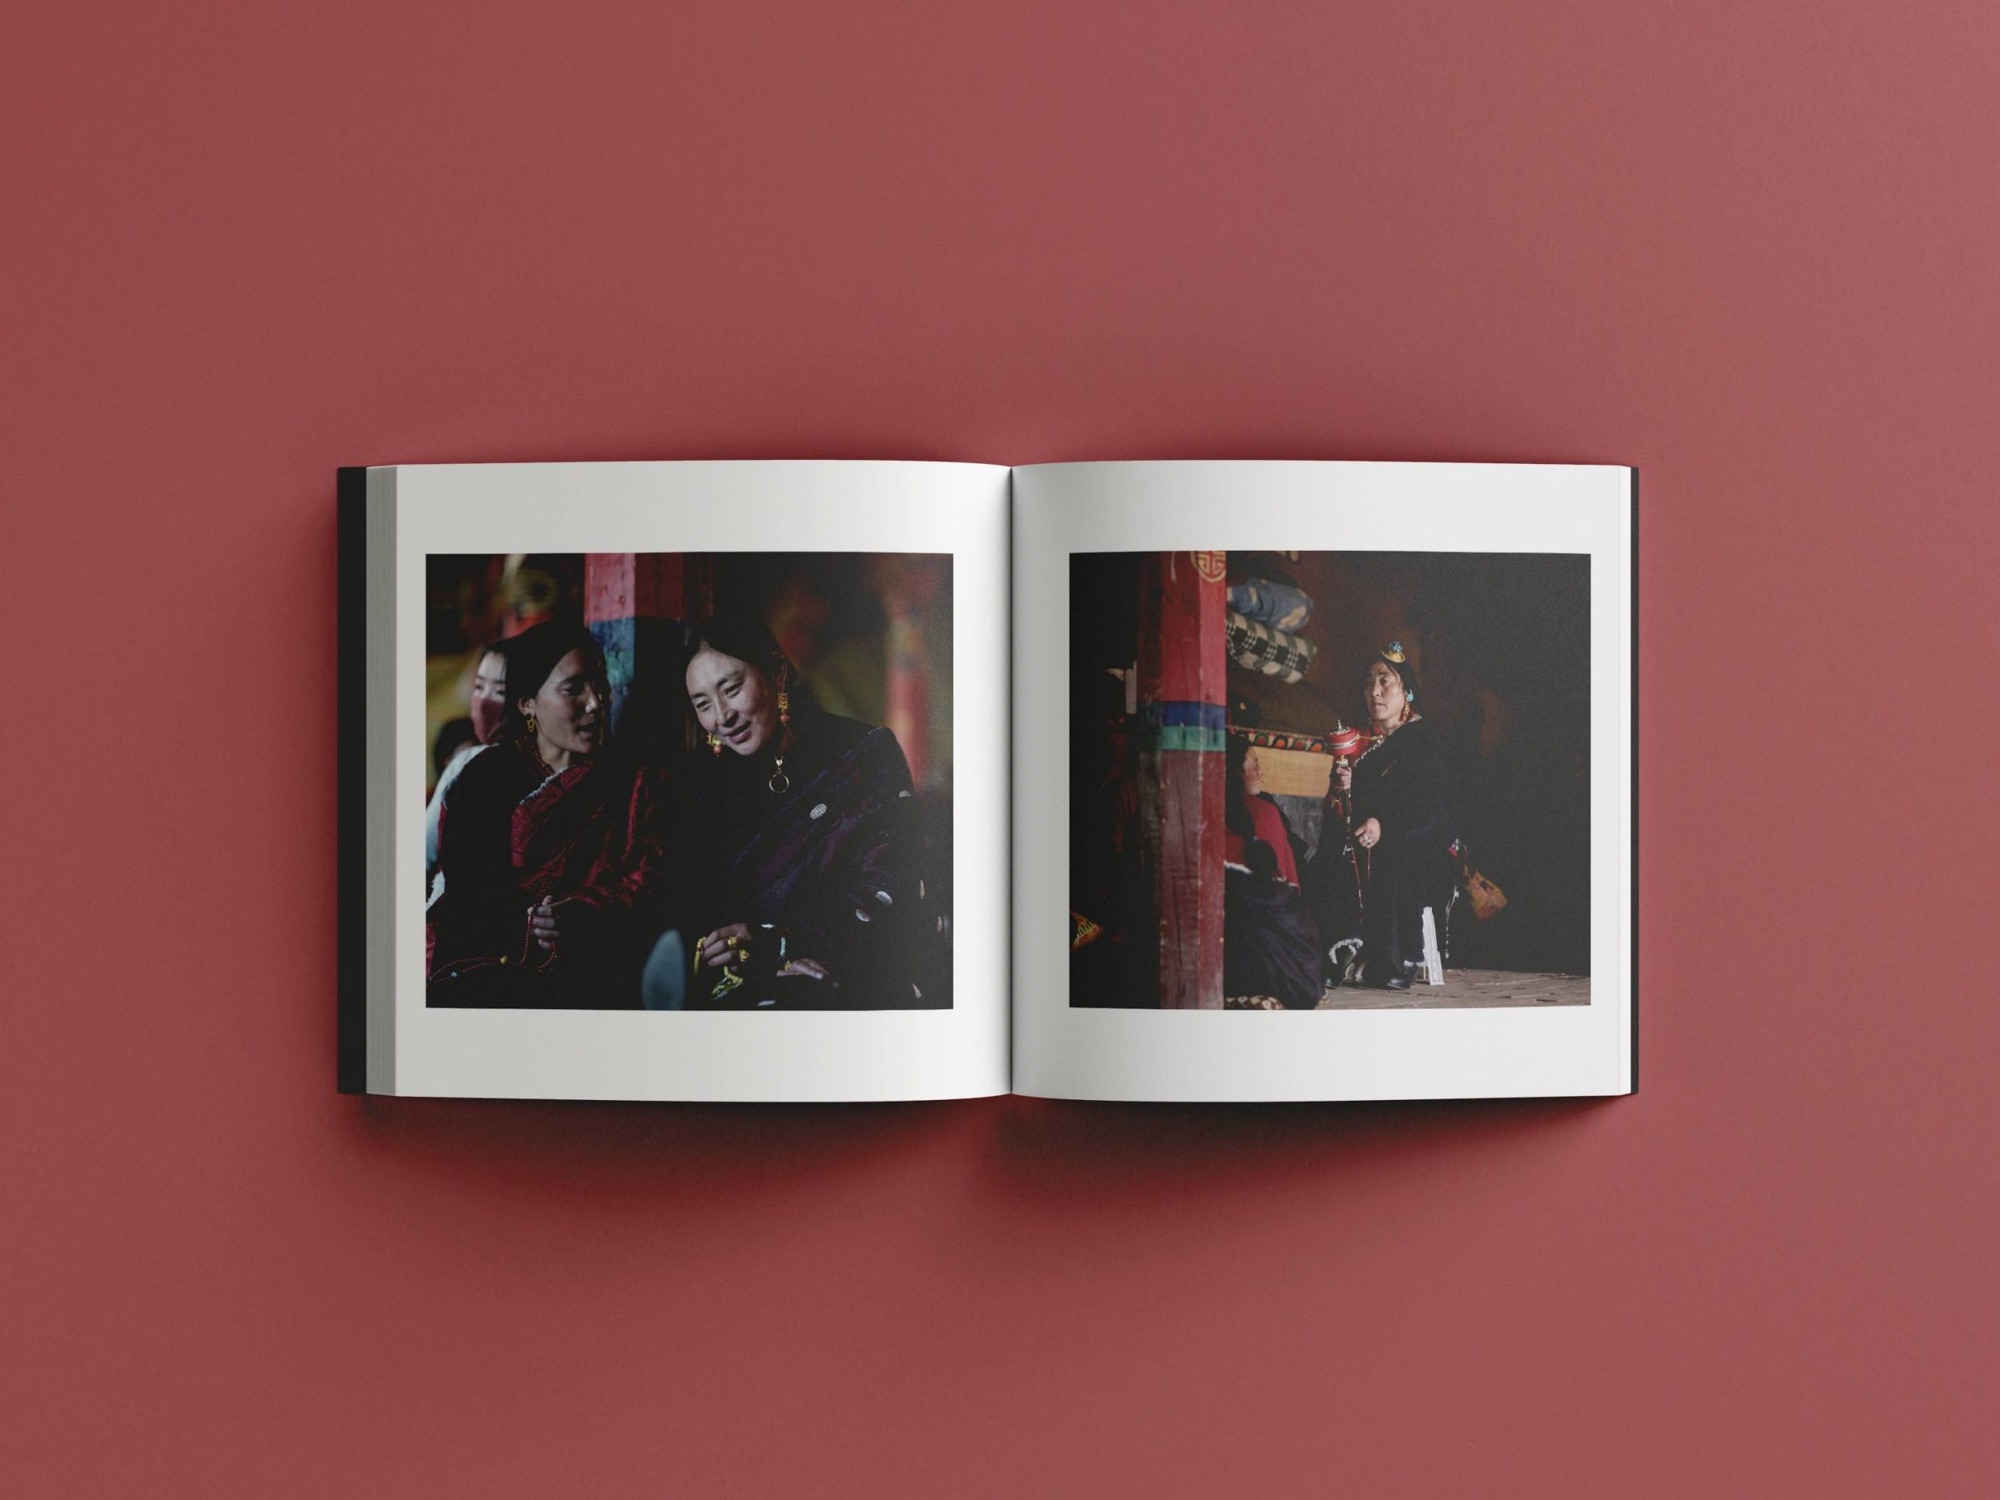 Tibet Photography Book Sichuan Documentary Singapore Coco Creative Studio 1-10